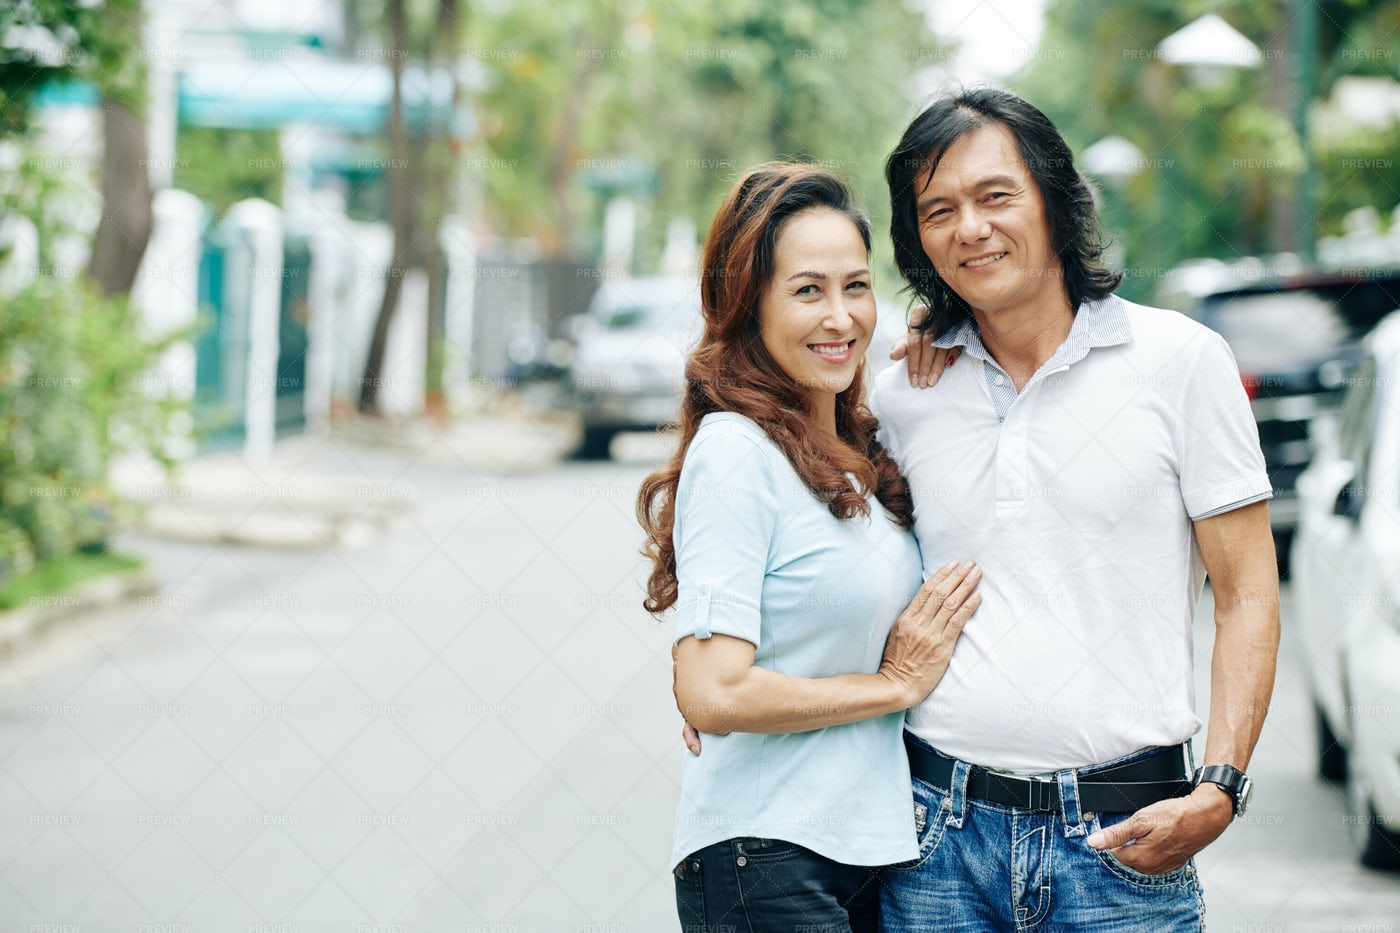 Smiling Middle-aged Vietnamese Couple: Stock Photos